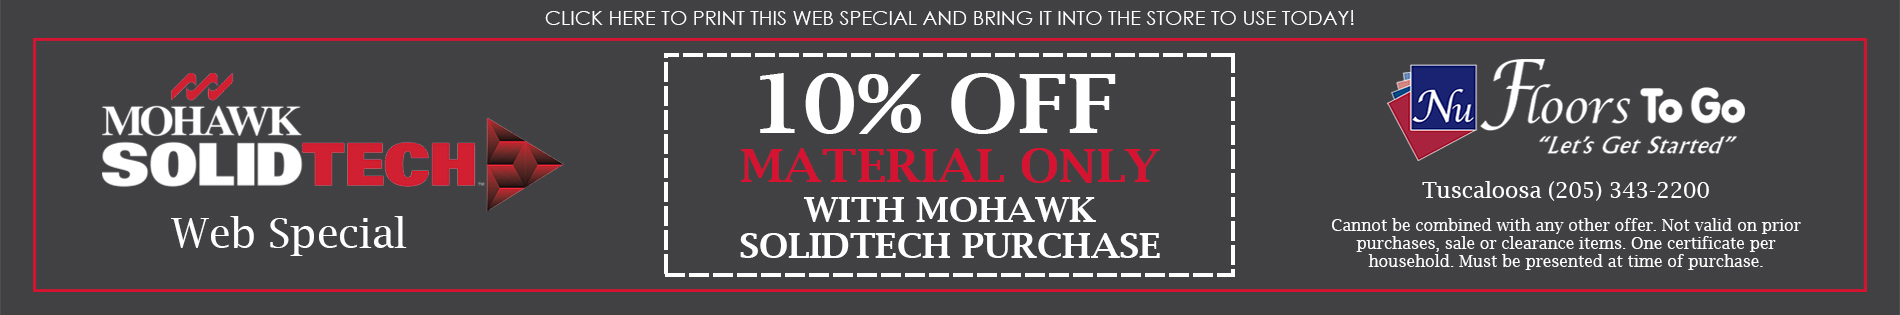 Mohawk SolidTech Web Special - 10% Off Material Only - Nu Floors To Go in Tuscaloosa, Alabama - Cannot be combined with any other offer. Not valid on prior purchases, sale, or clearance items. One certificate per household. Must be presented at time of purchase.